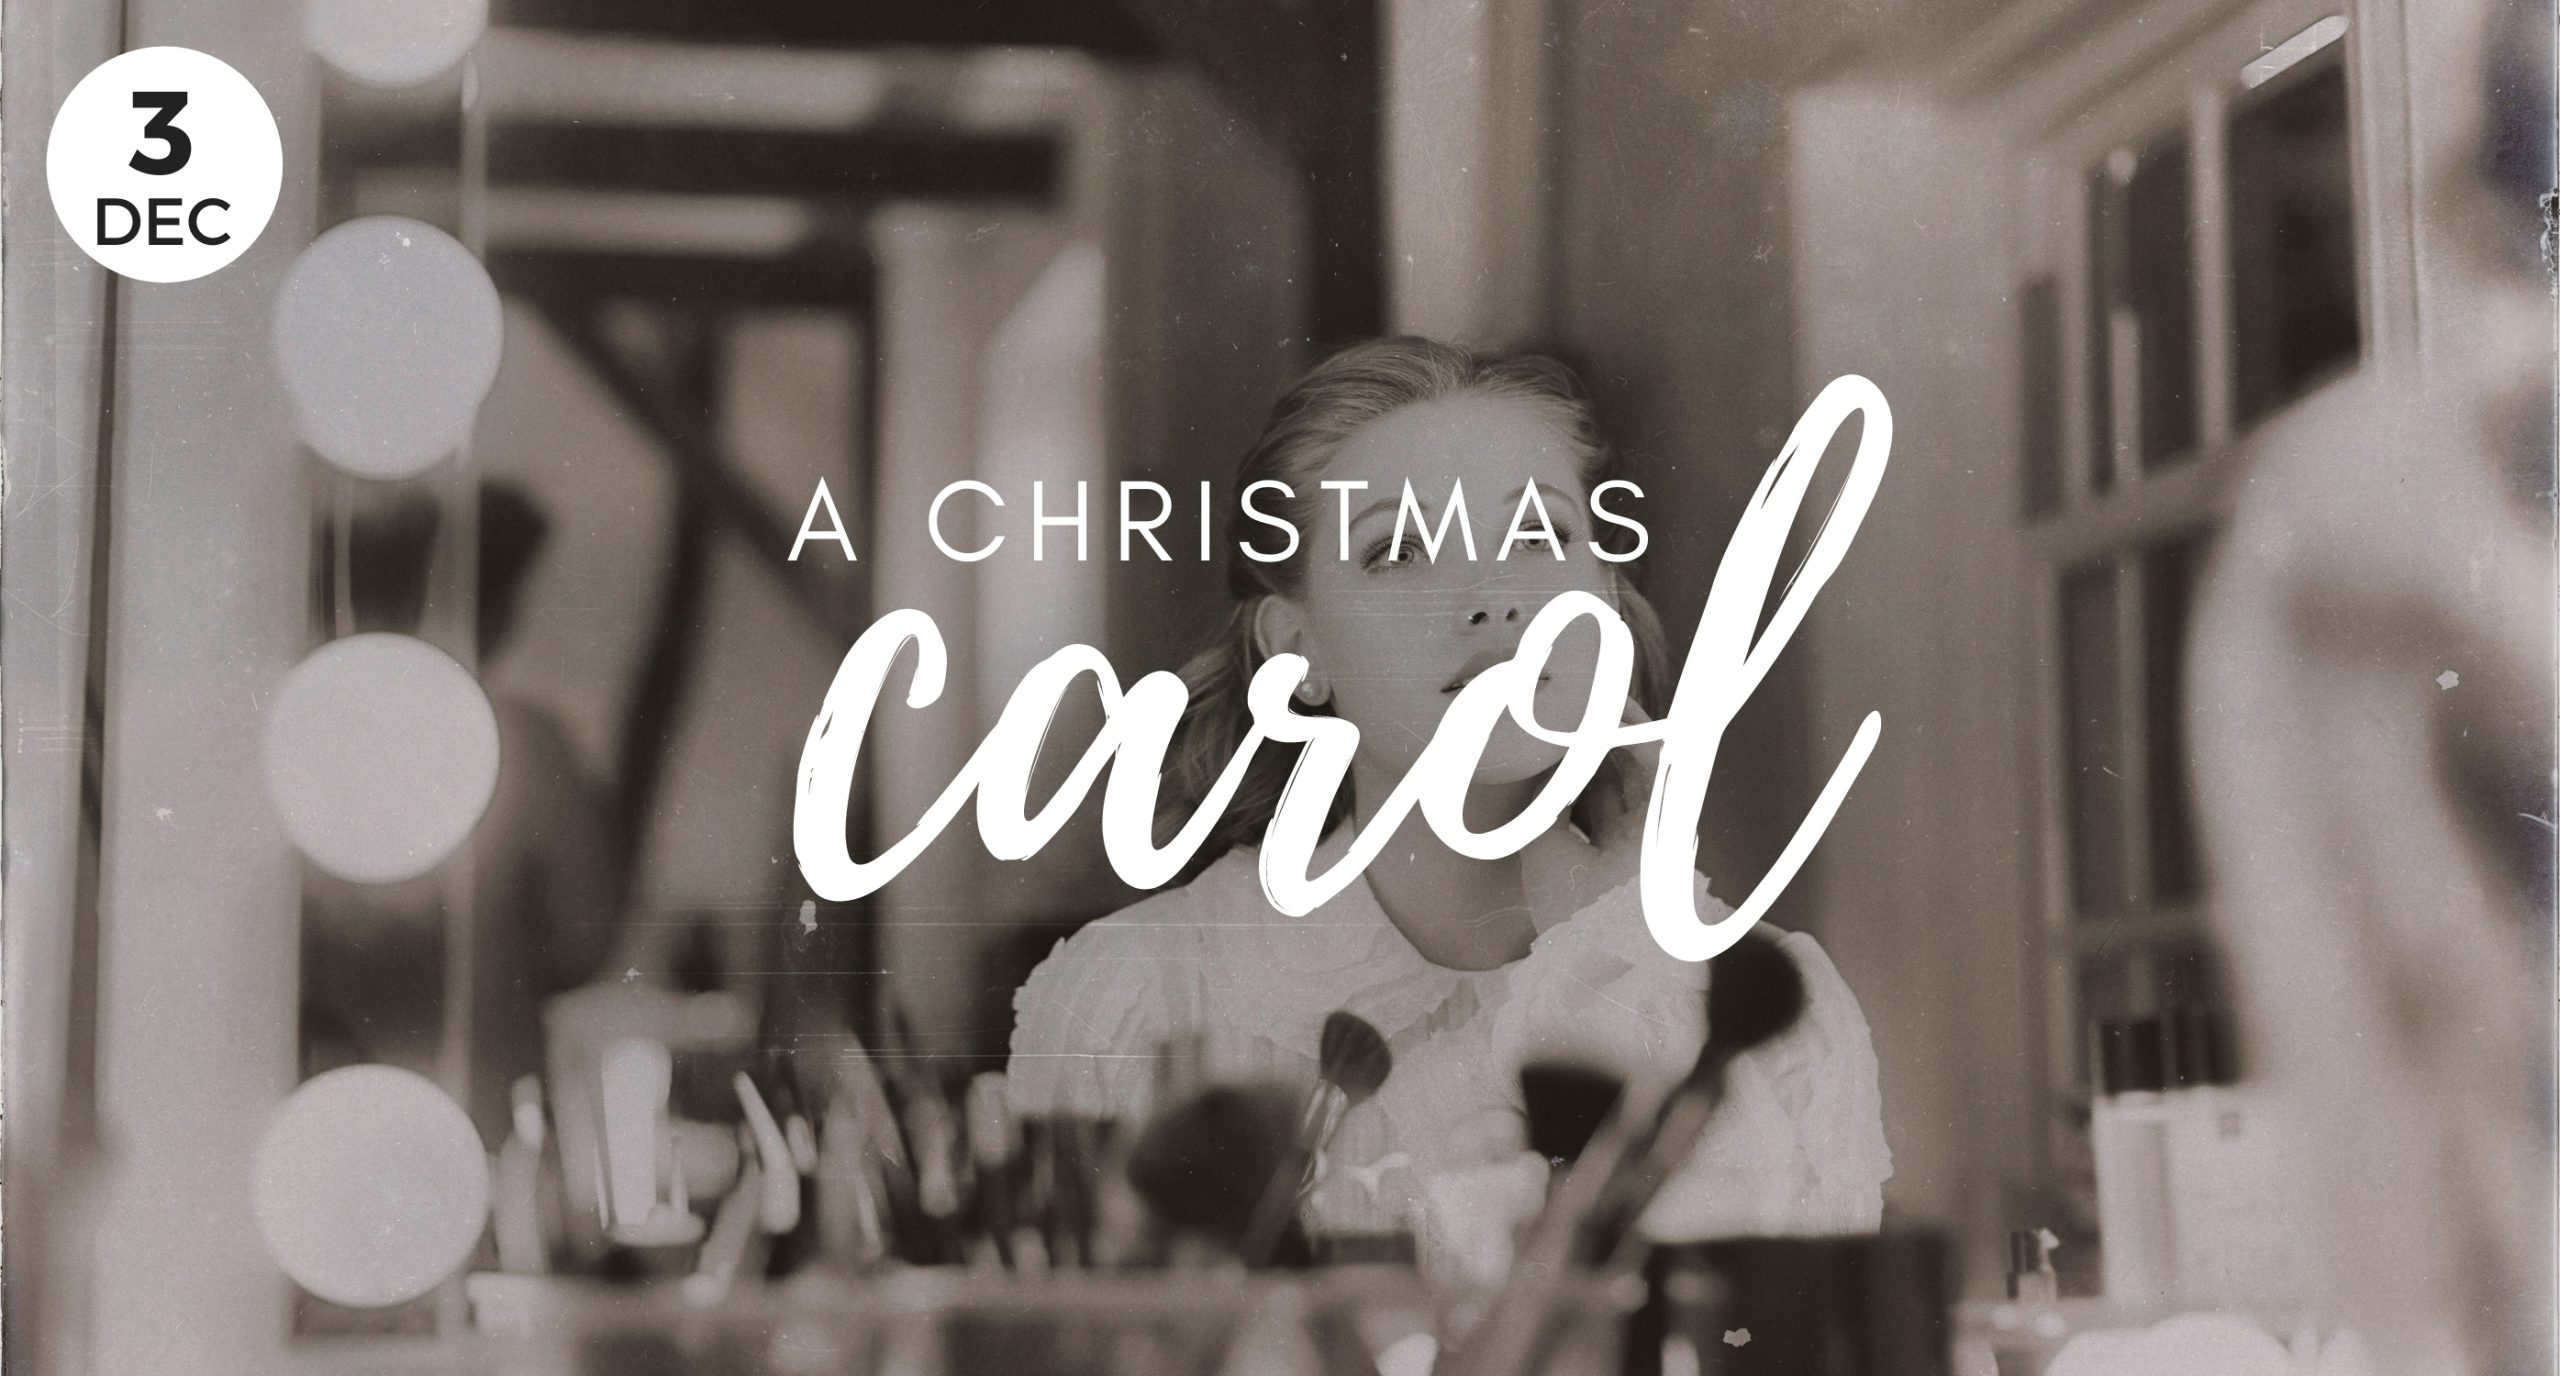 A cHristmas Carol, Windermere Real Estate, Whidbey island, Local Events, All in for you, Community Culture